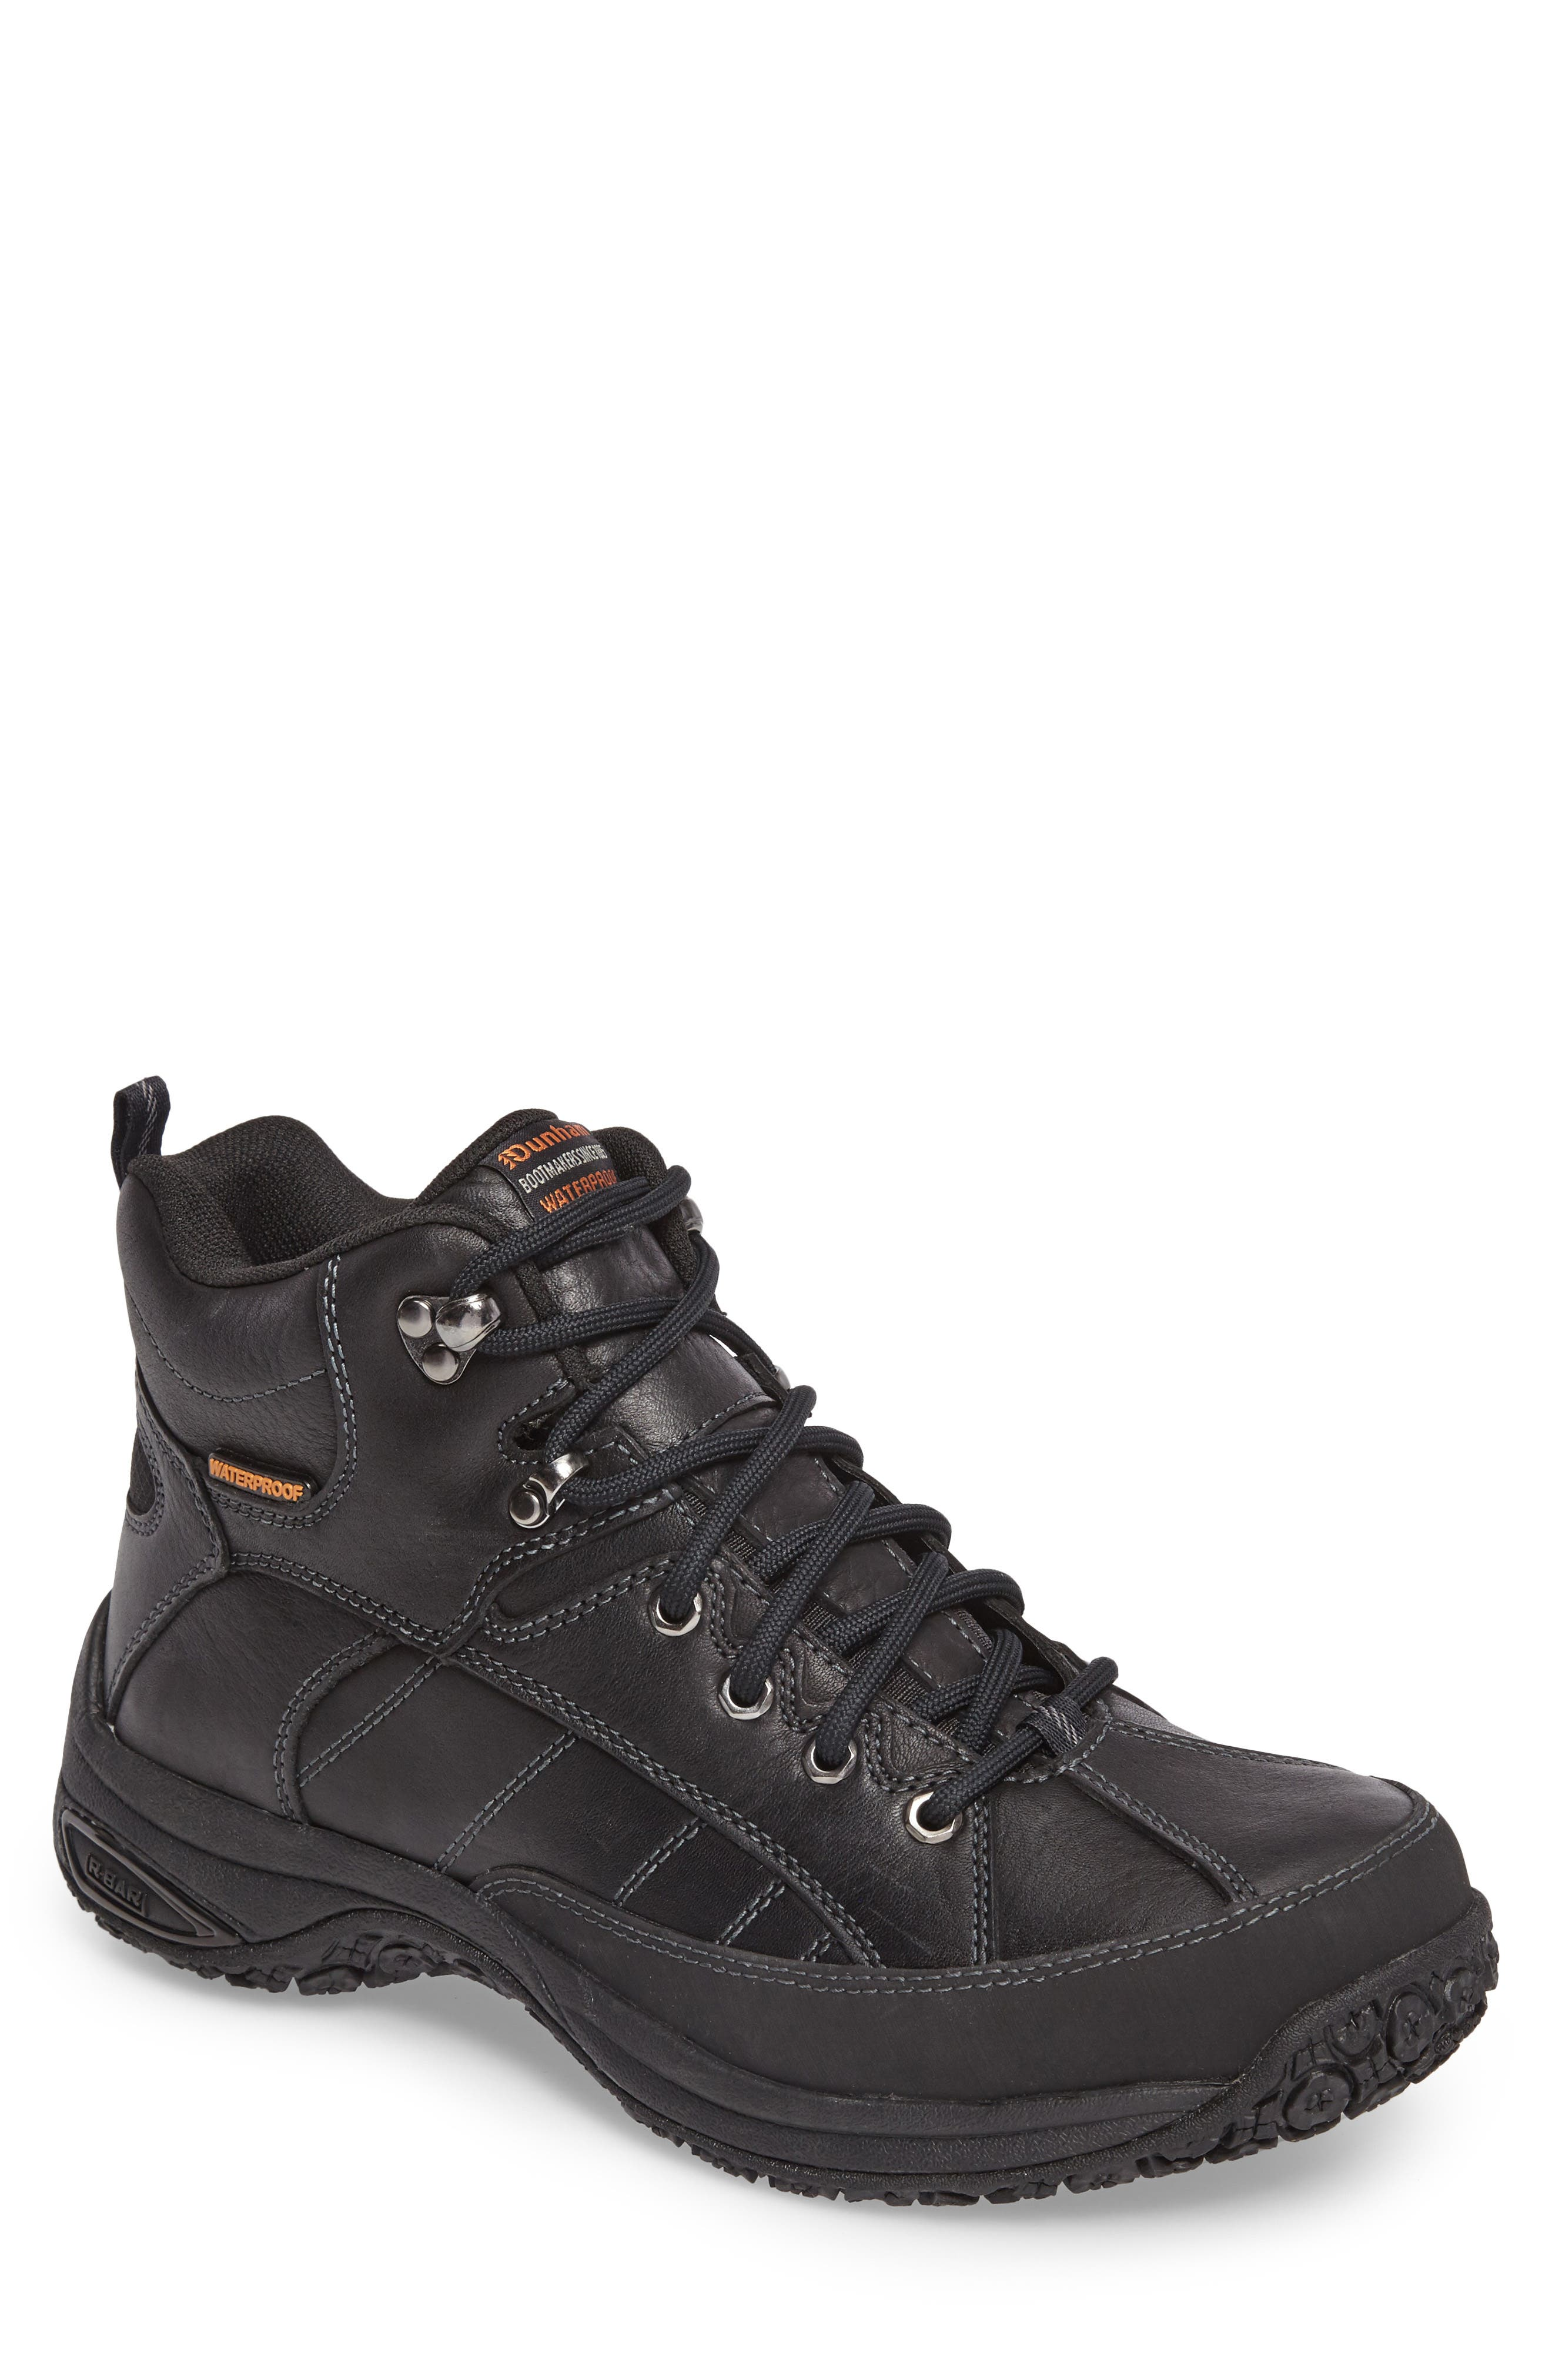 'Lawrence' Boot,                         Main,                         color, Black